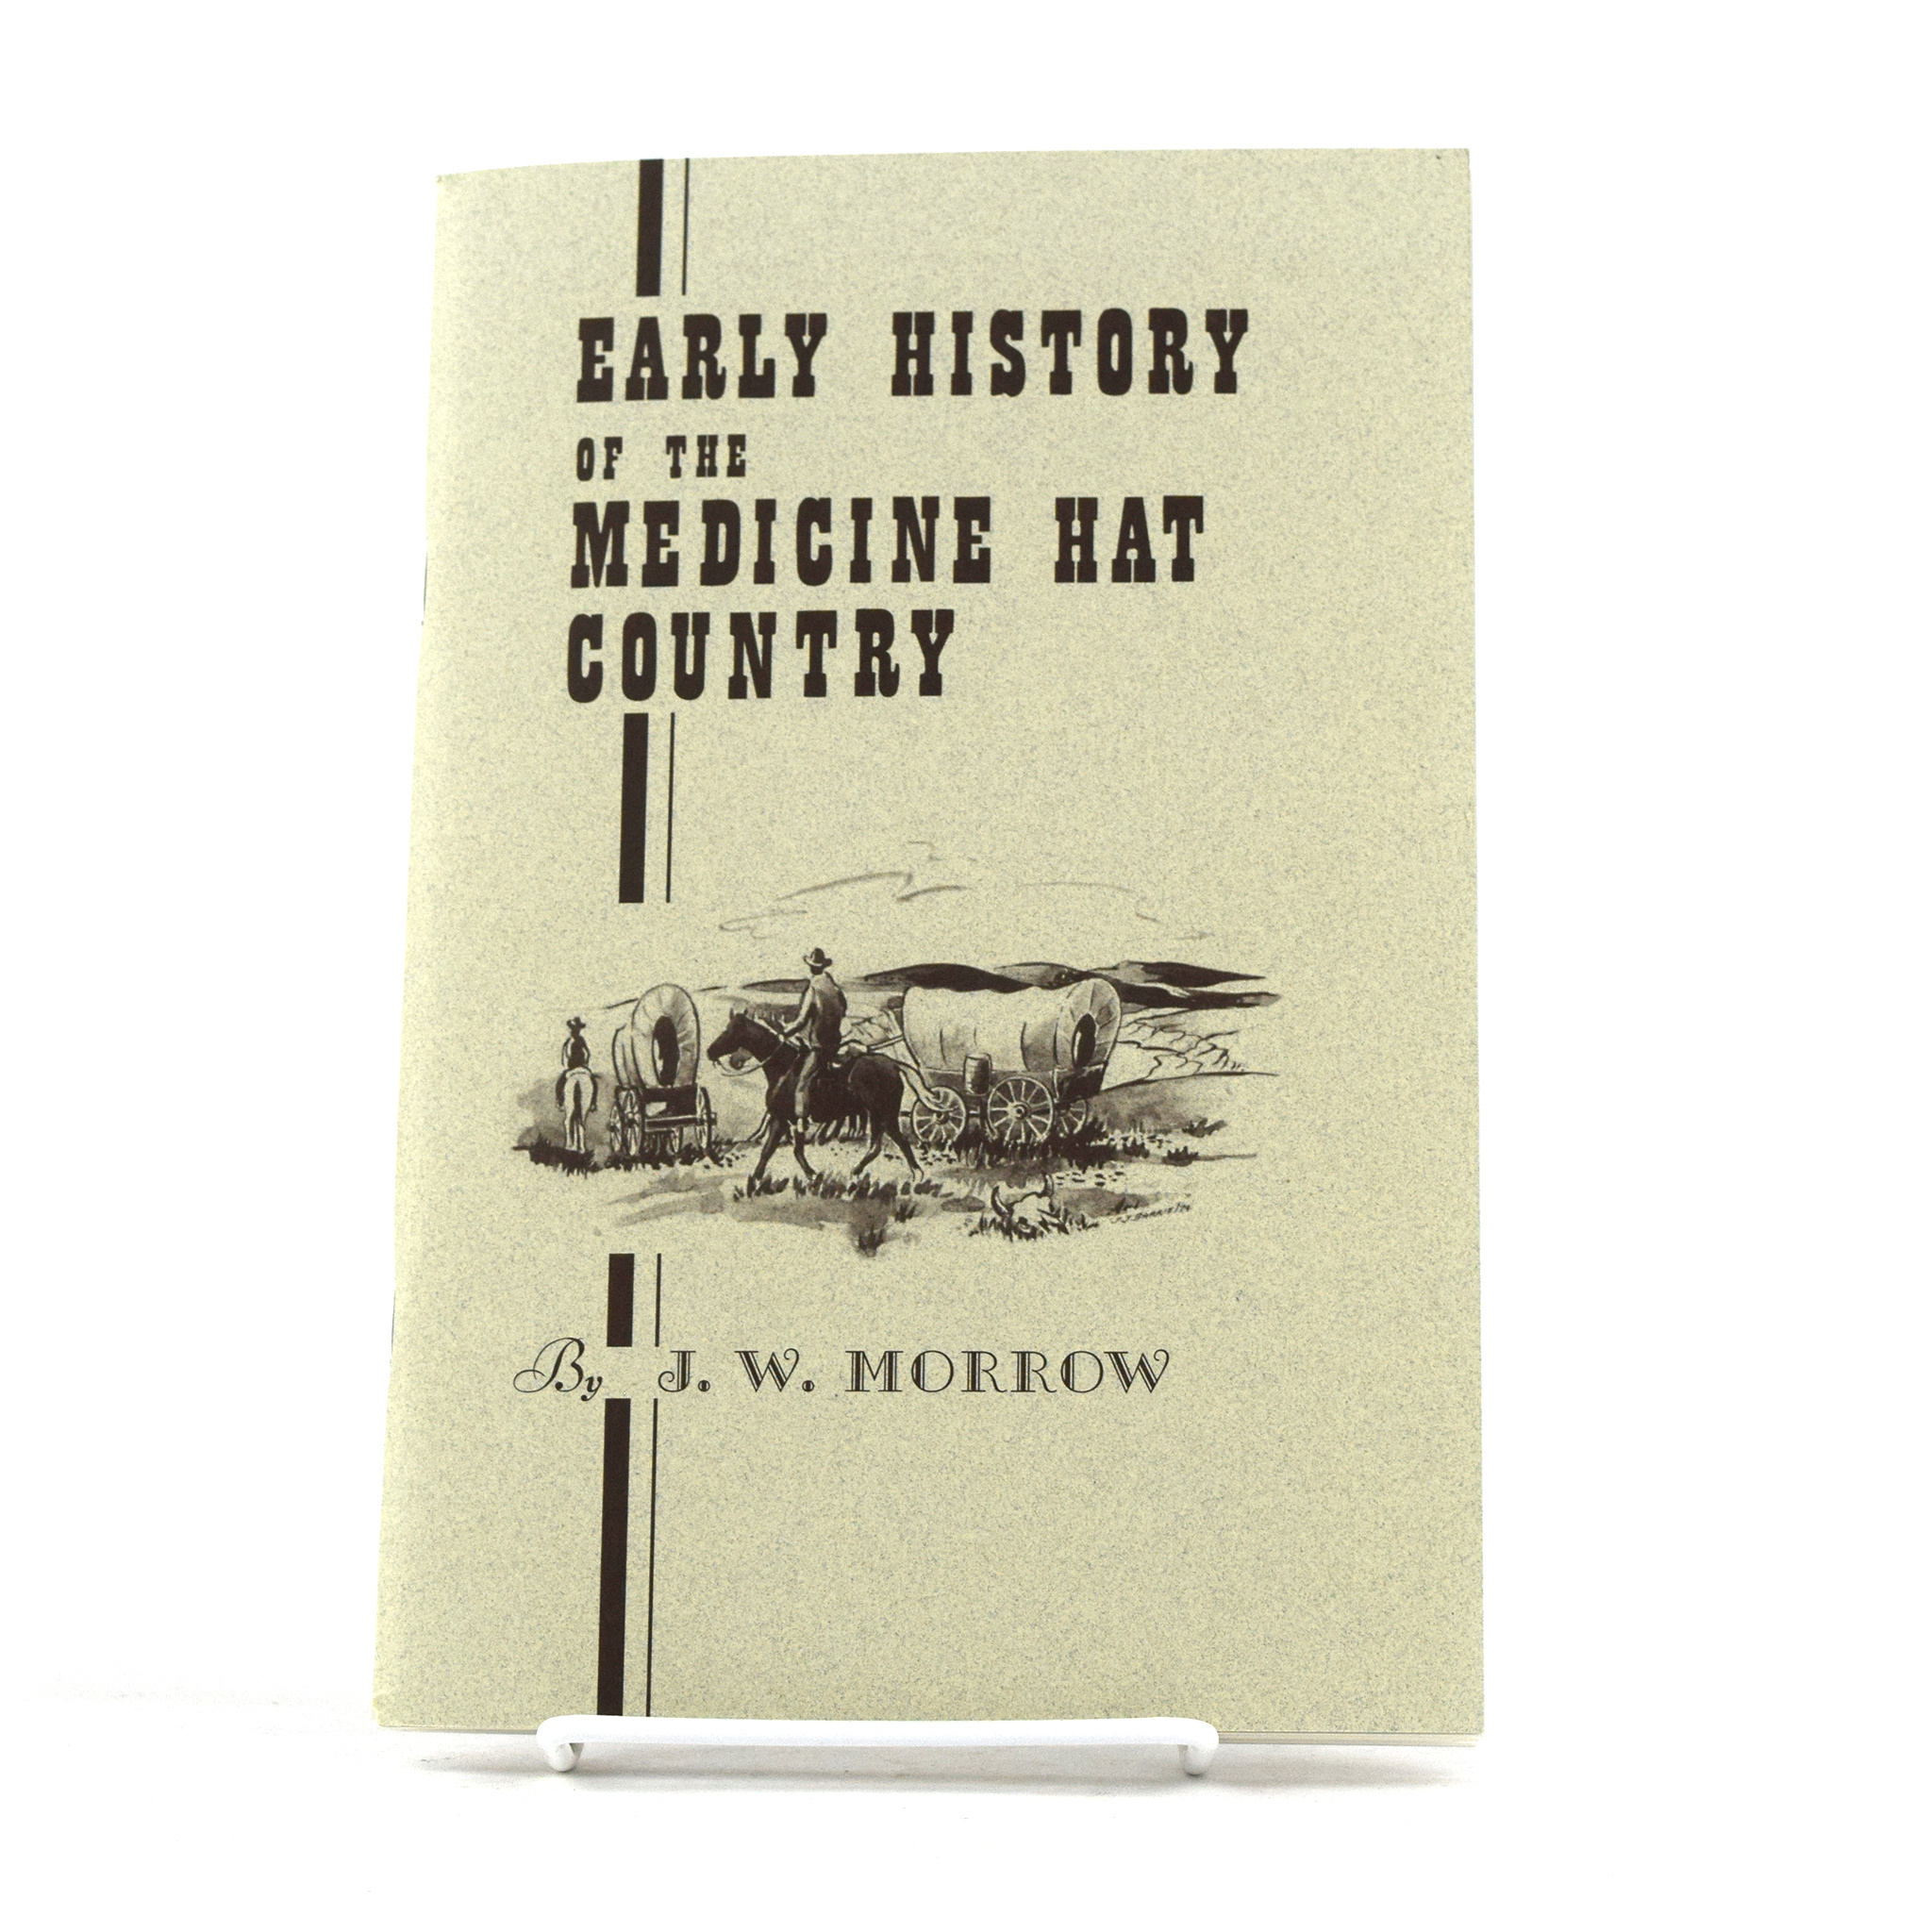 Early History of the Medicine Hat Country